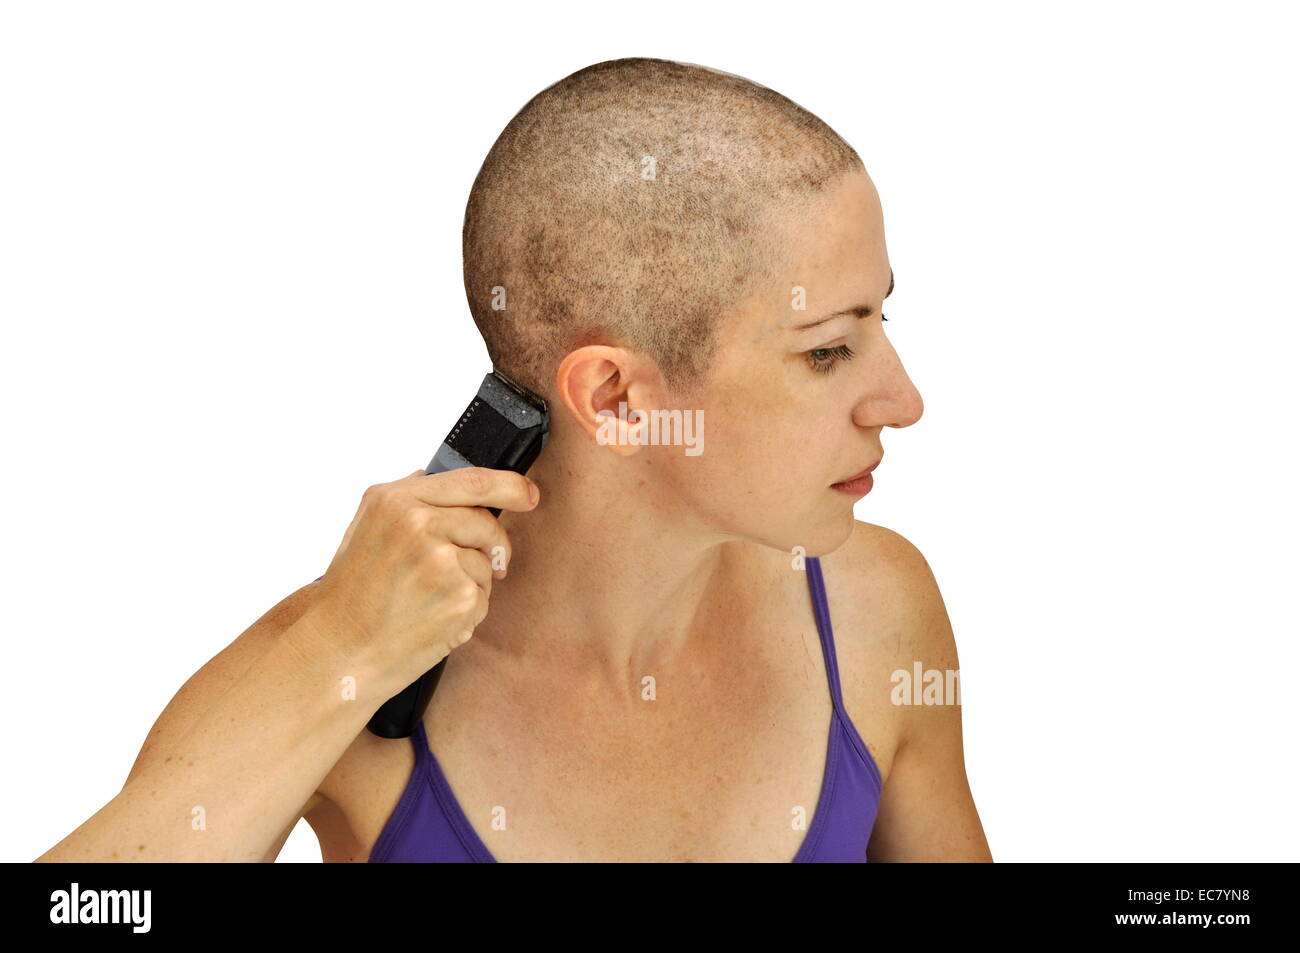 Woman in purple bodice shaving herself bald with clipper, isolated on white. Horizontal composition. - Stock Image